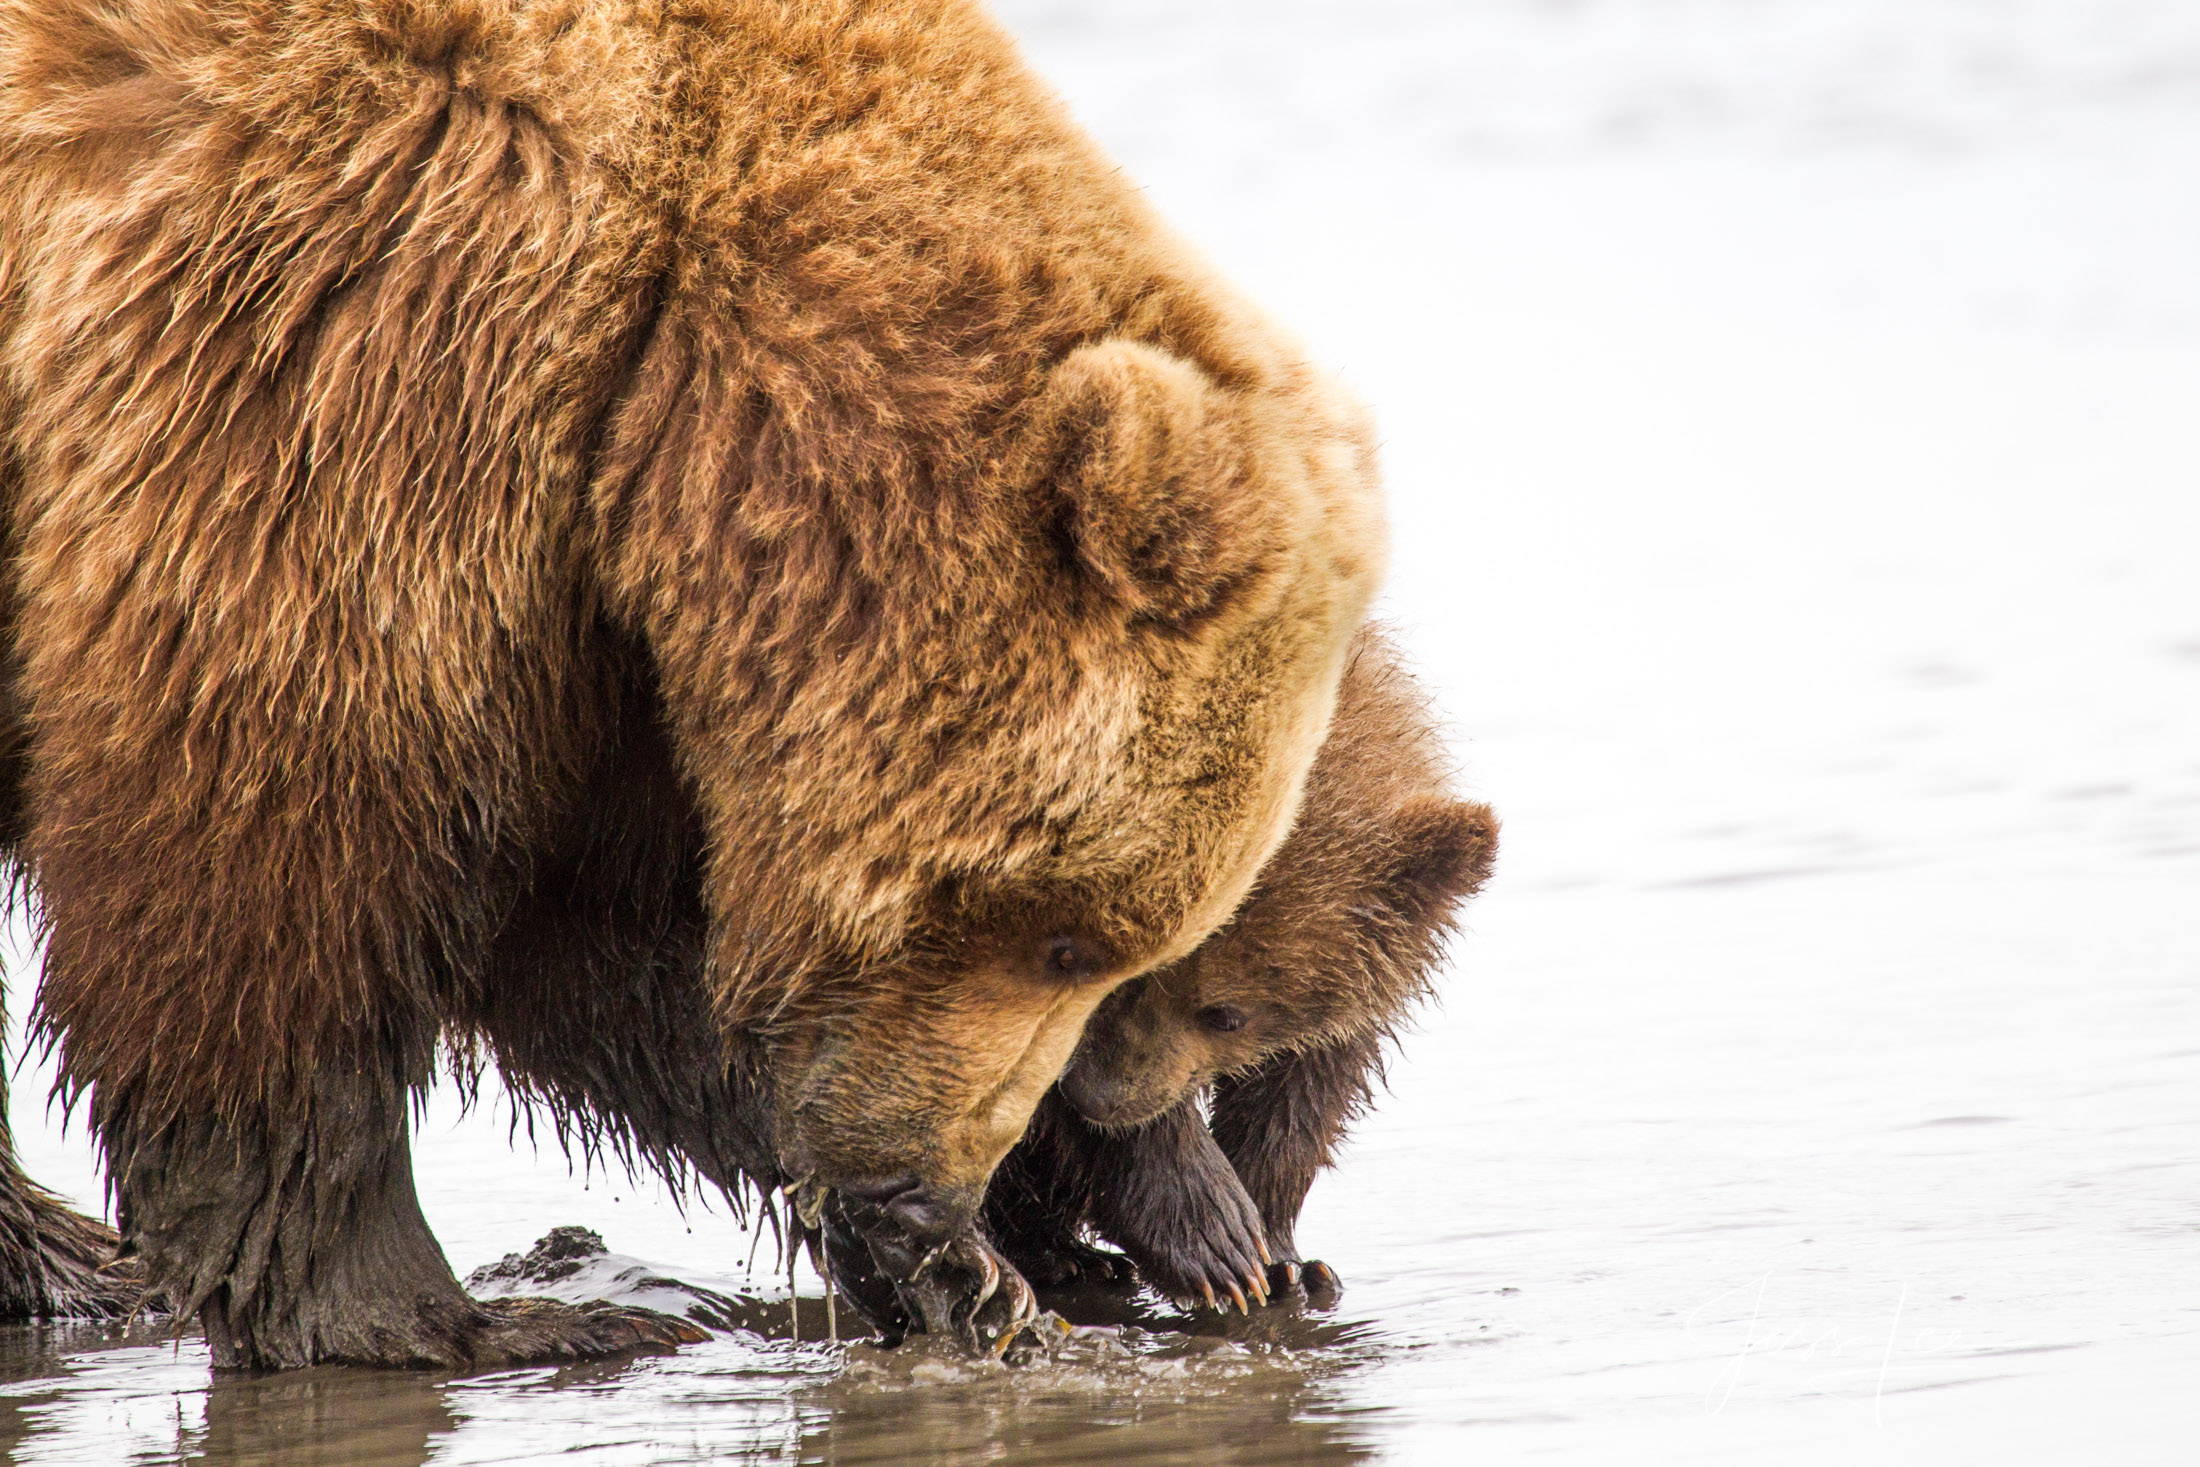 Grizzly Bear digging clams  fine art limited edition of 300 prints